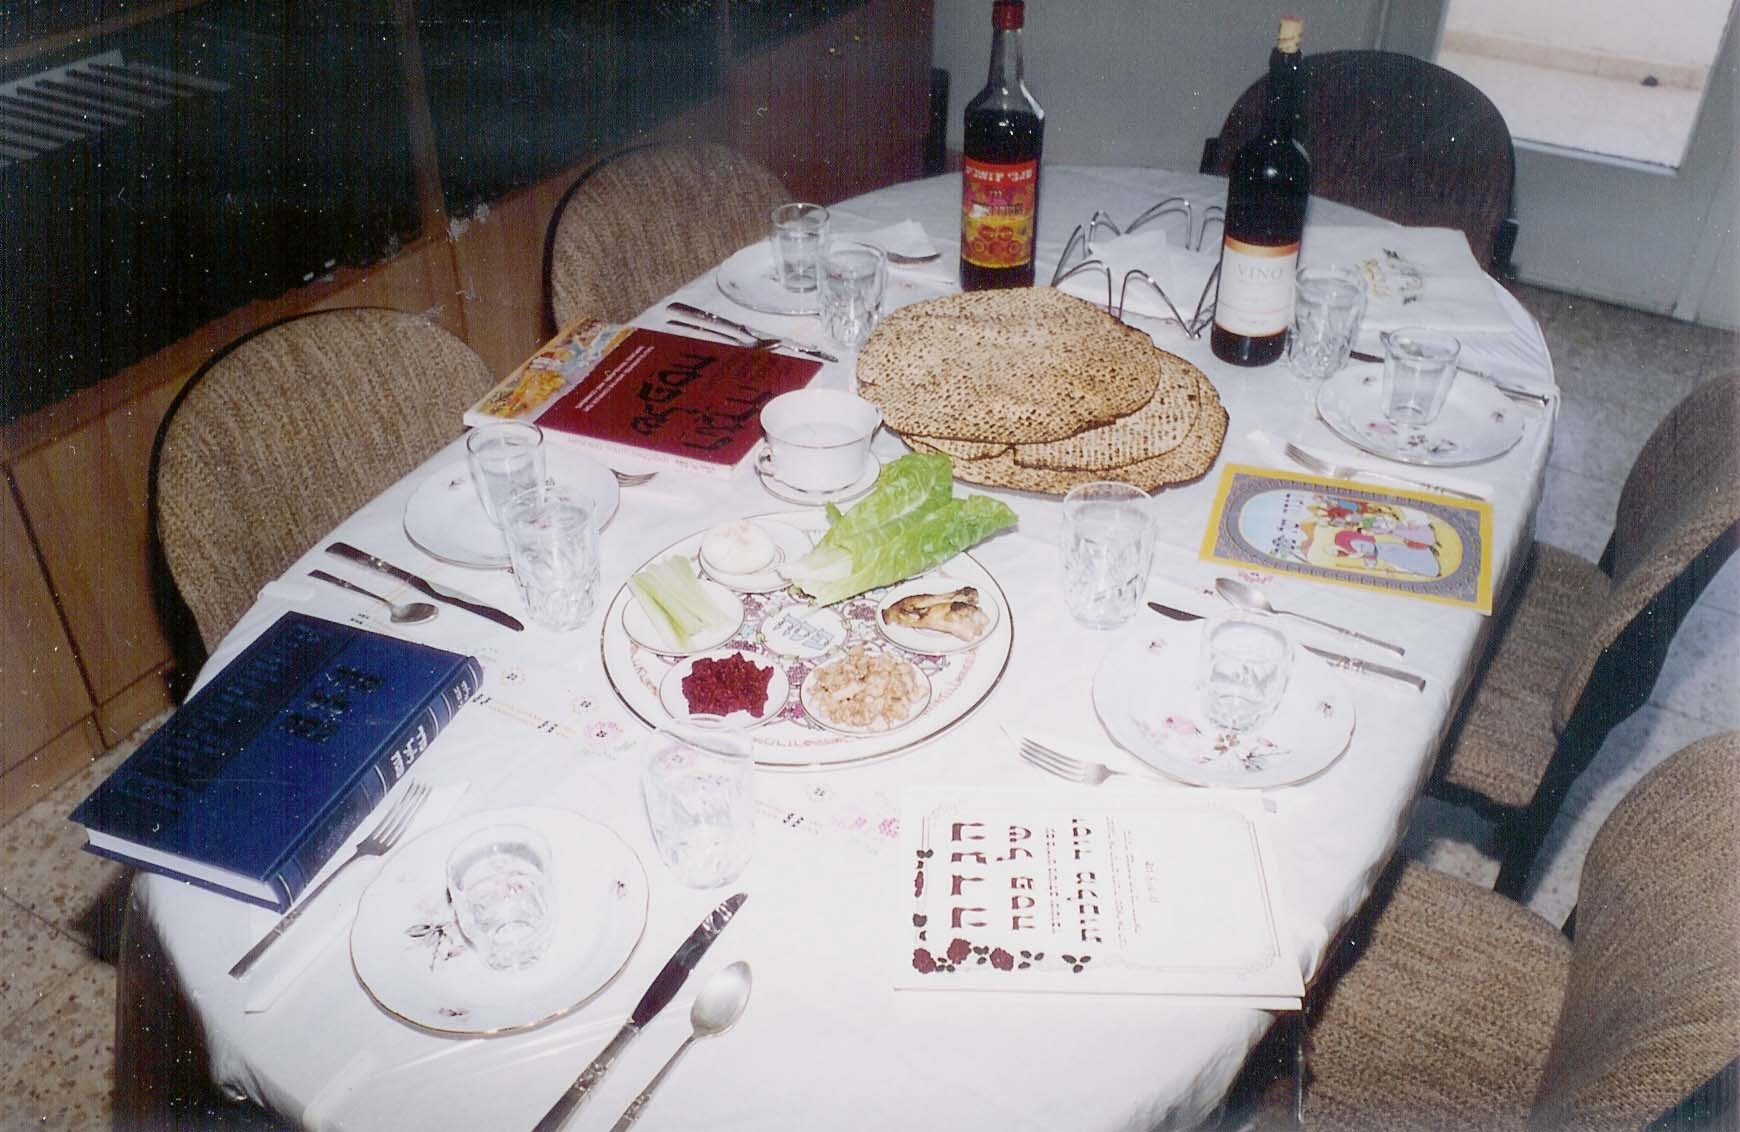 File:Seder Table.jpg - Wikimedia Commons